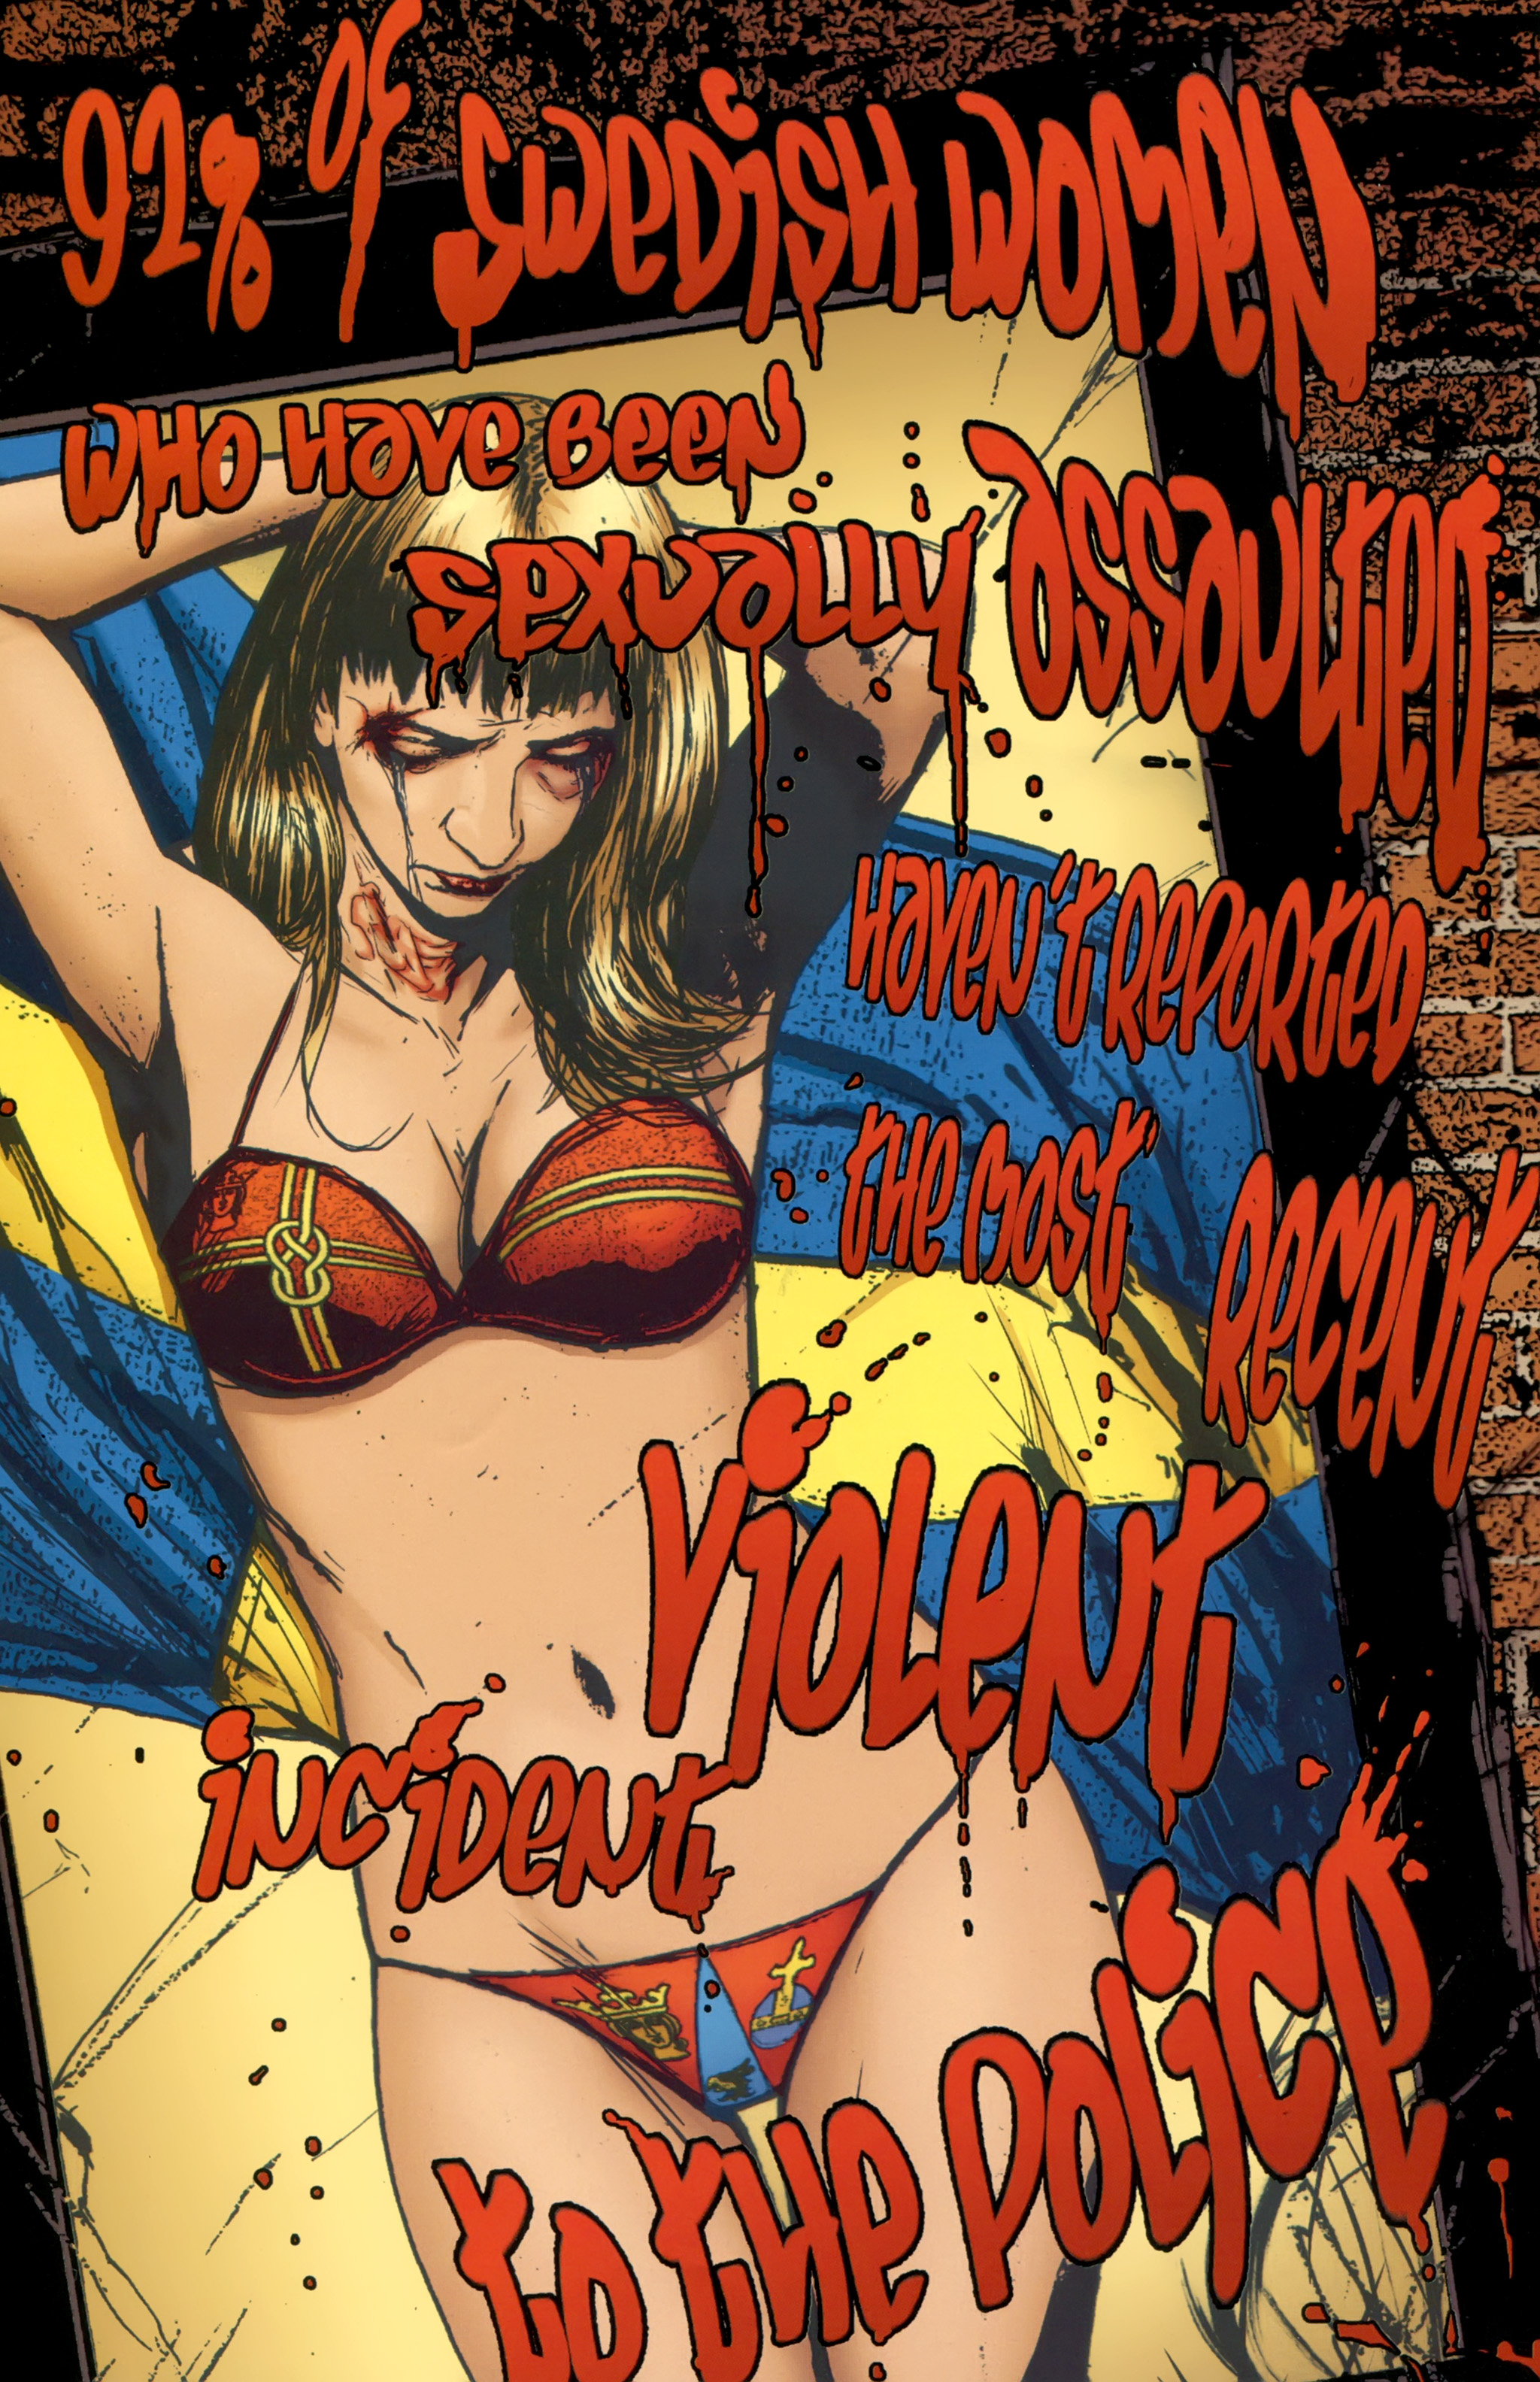 Read online The Girl With the Dragon Tattoo comic -  Issue # TPB 2 - 86